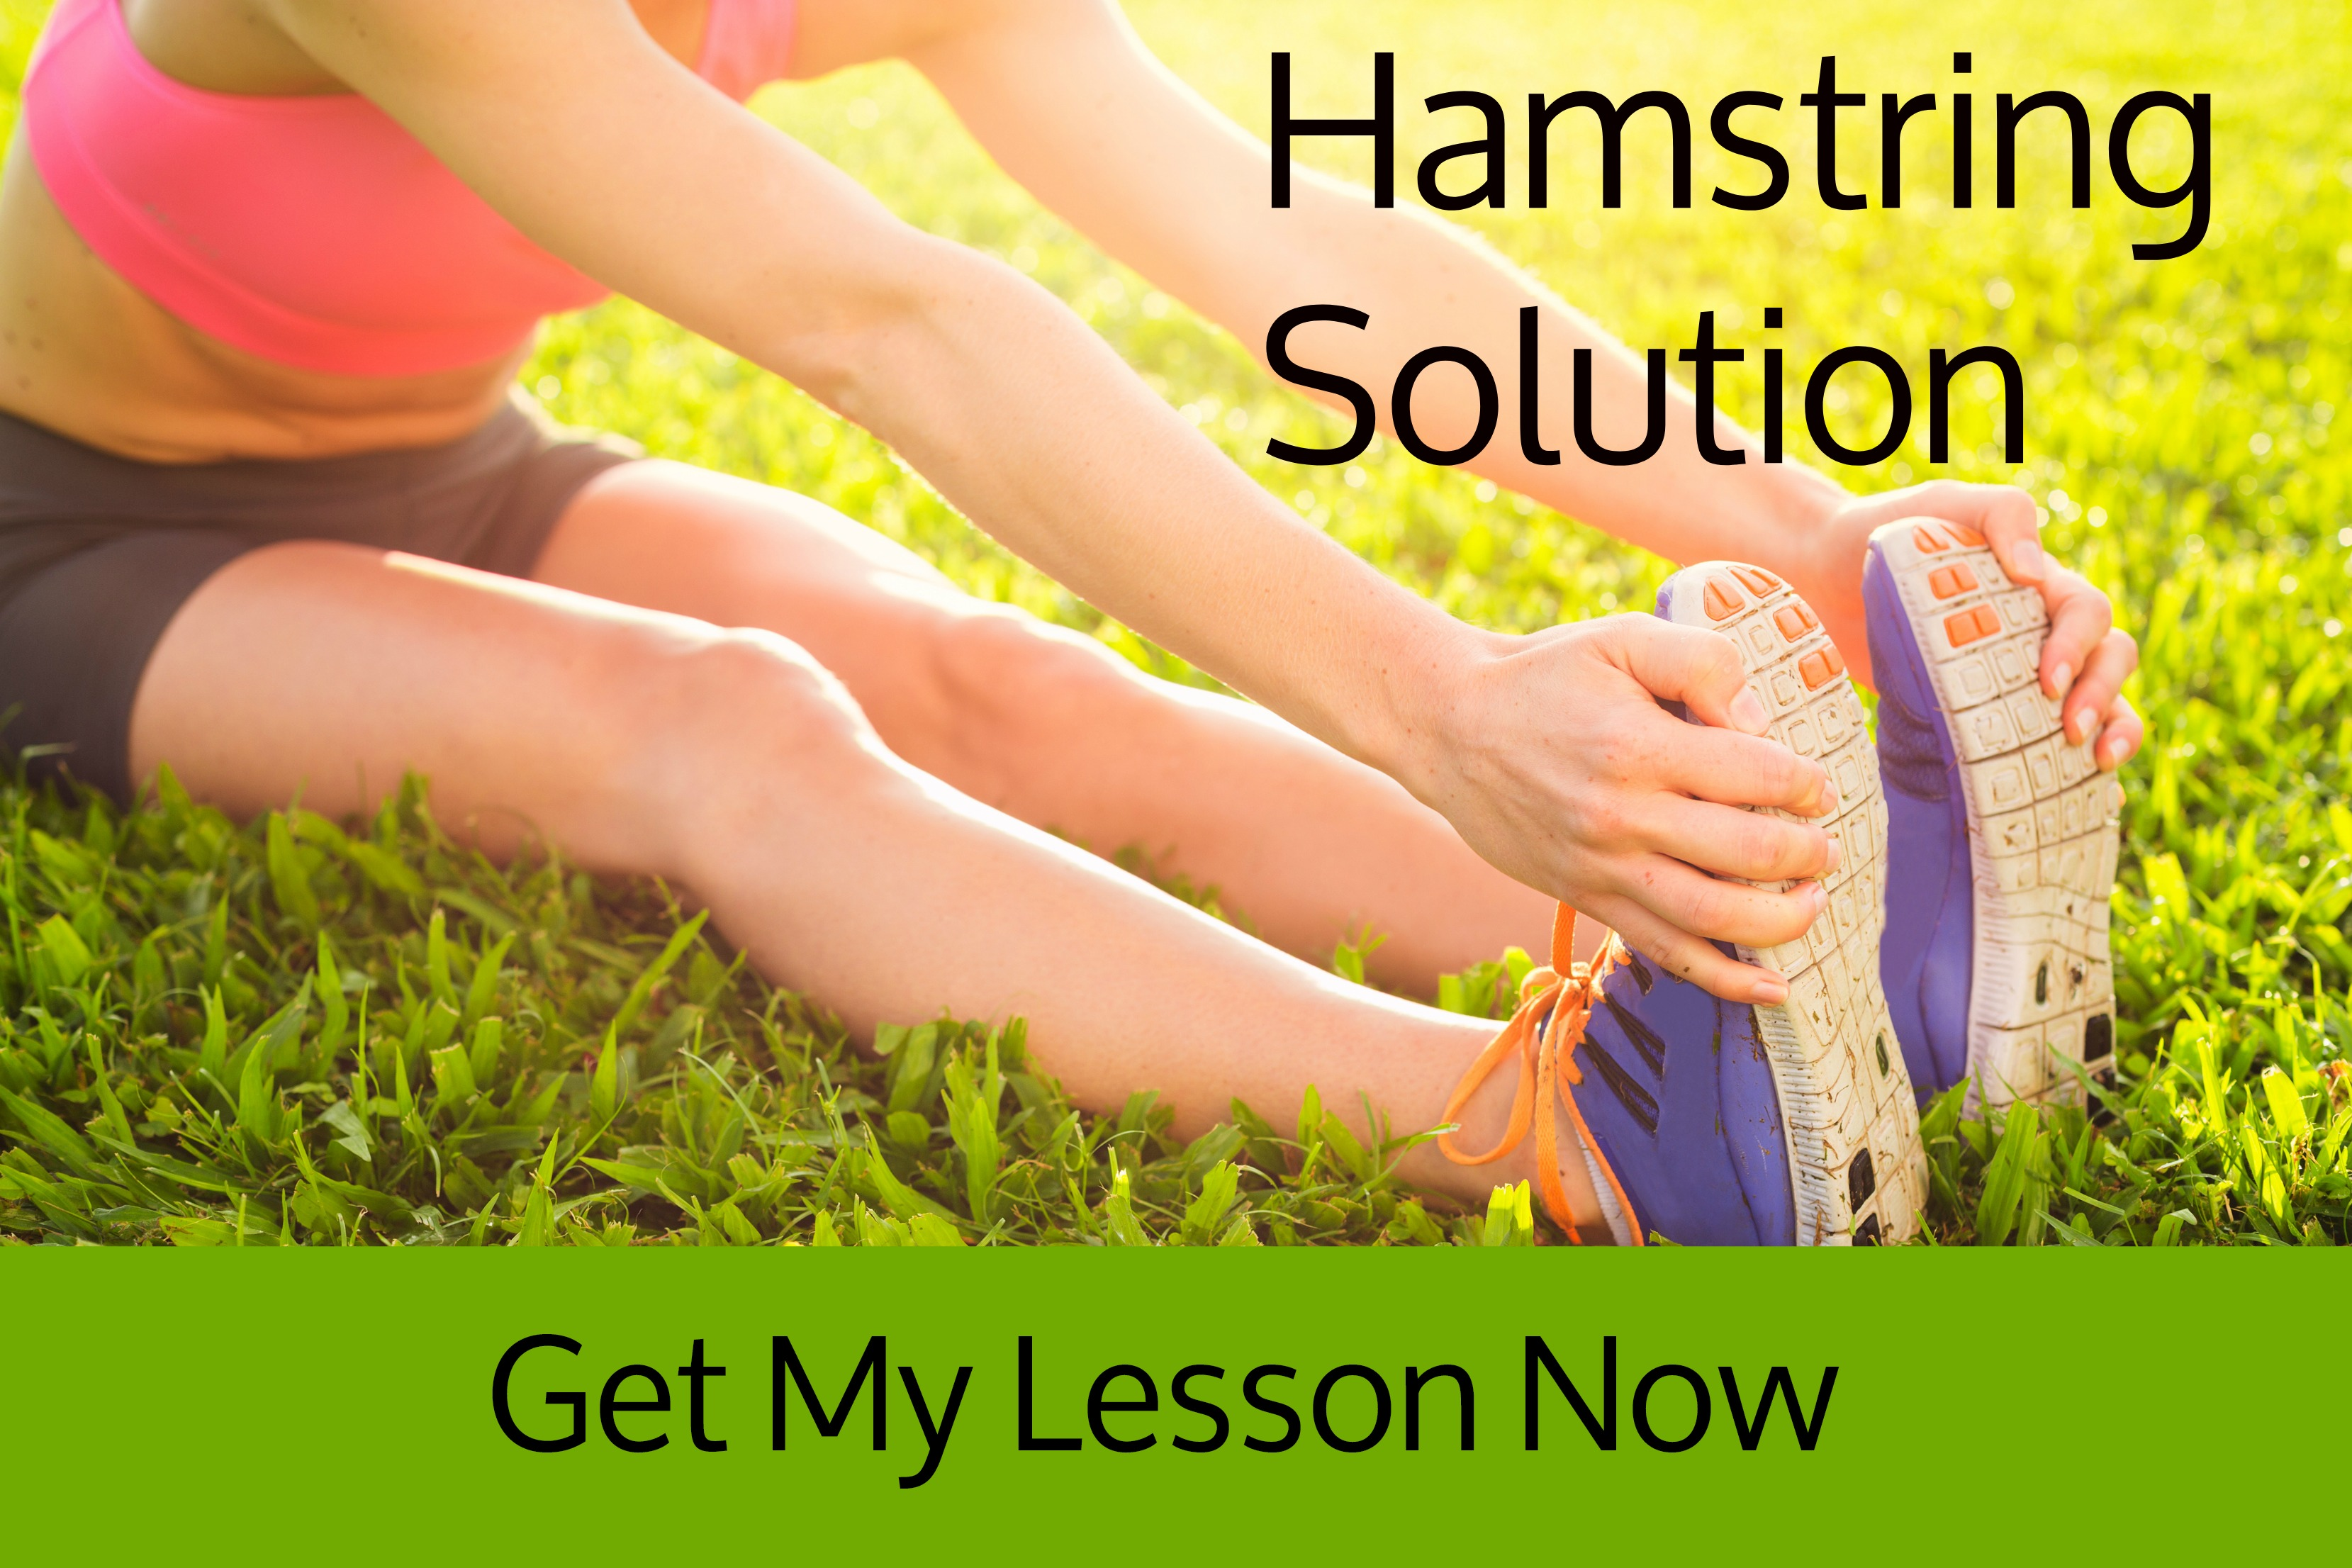 Click here to get your Hamstring Solution